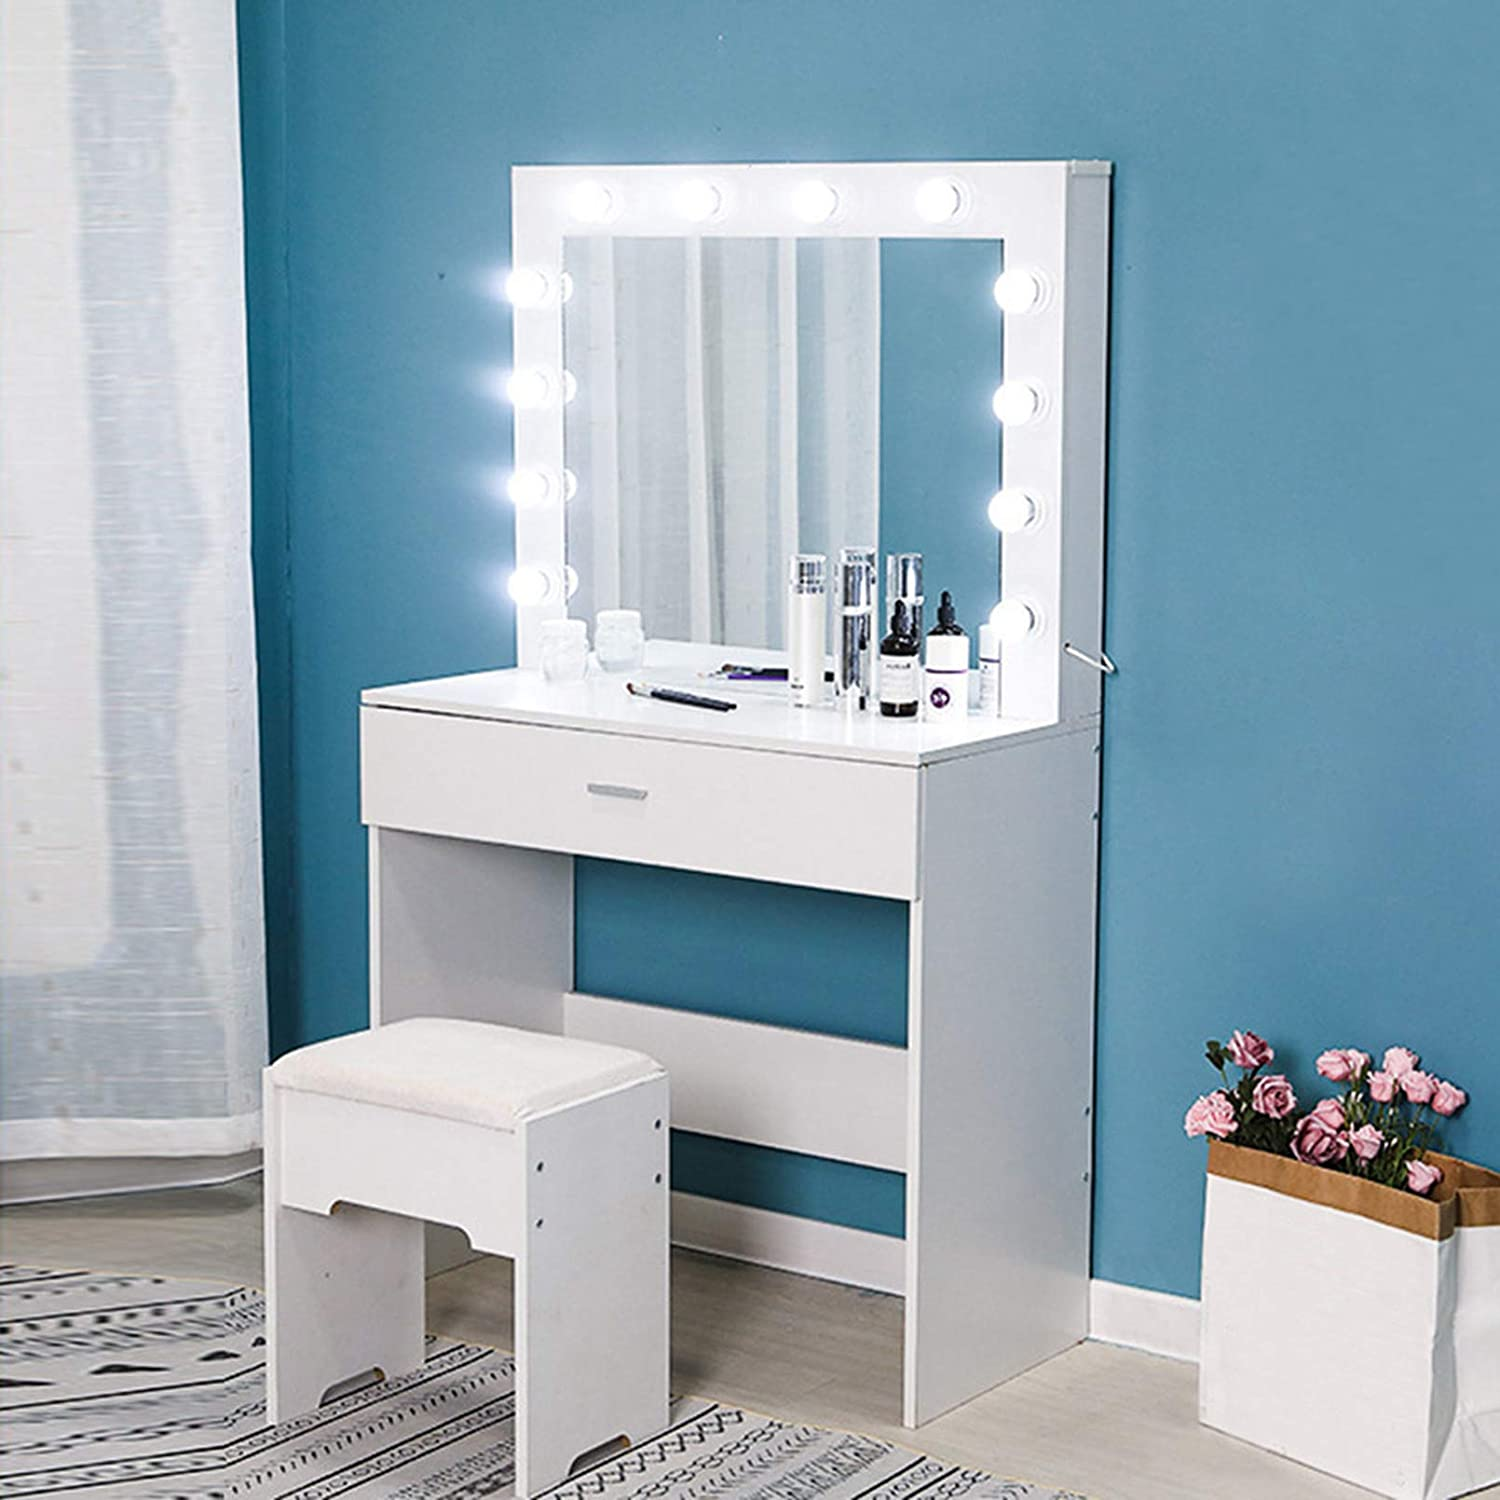 Riforla Vanity Set with Lighted Mirror, Makeup Vanity Dressing Table  Dresser Desk with Large Drawer for Bedroom, White Bedroom Furniture(11 Cool  LED